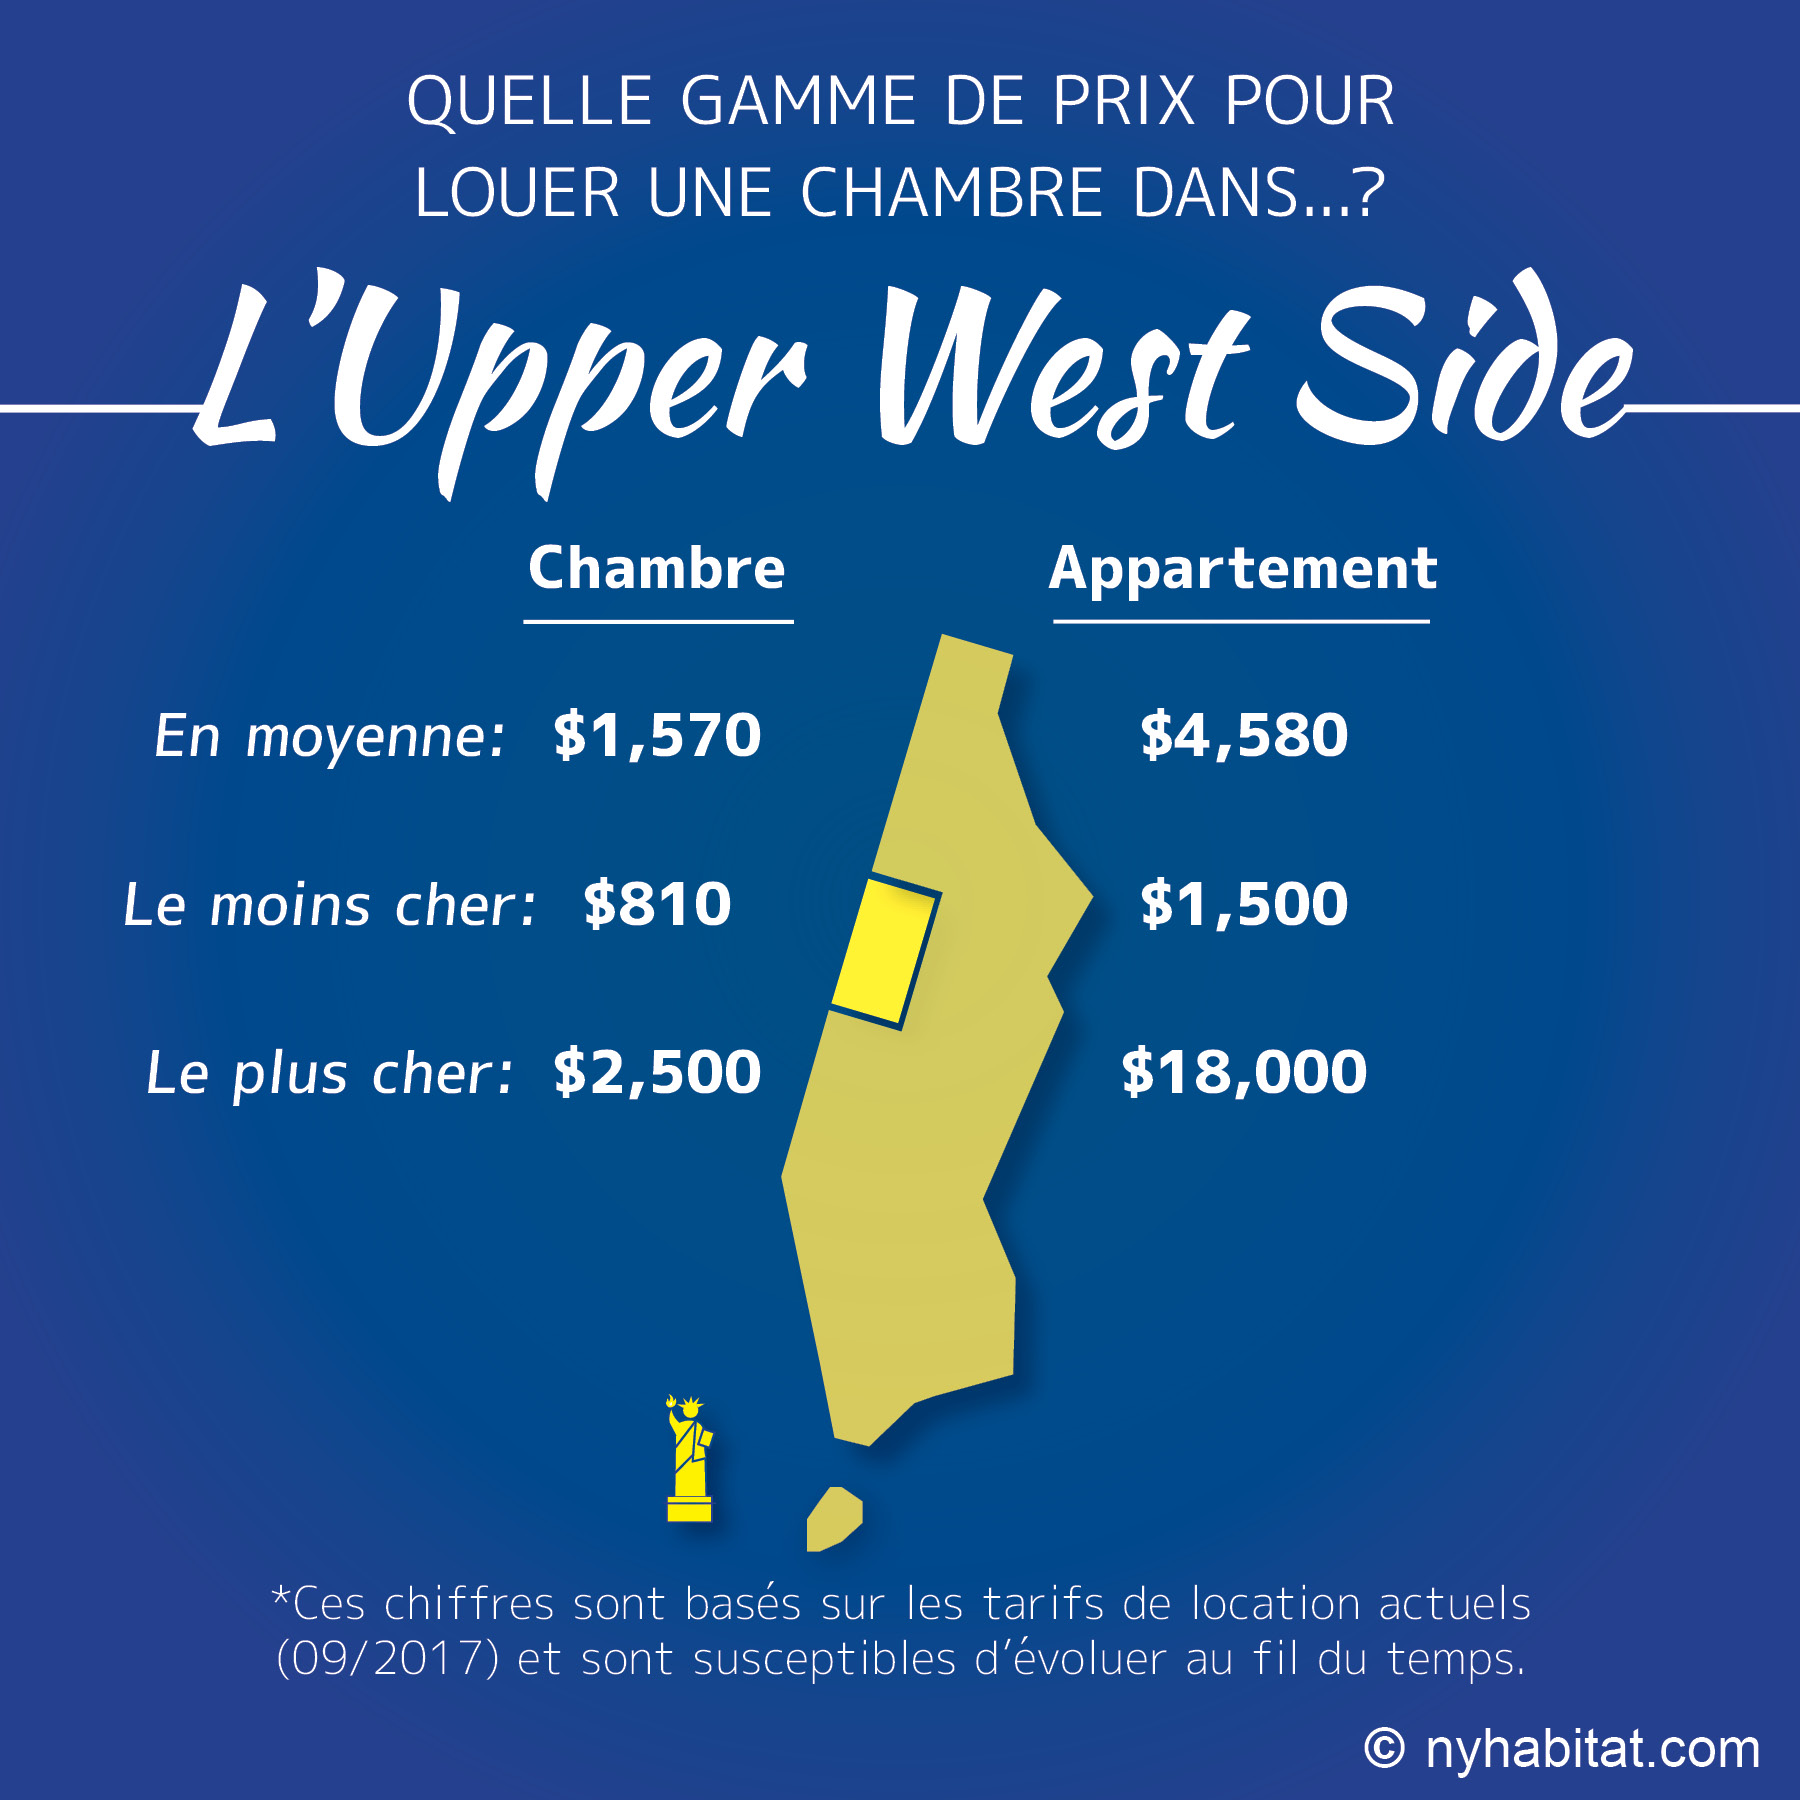 Infographie comparative des loyers de chambres et d'appartements dans l'Upper West Side